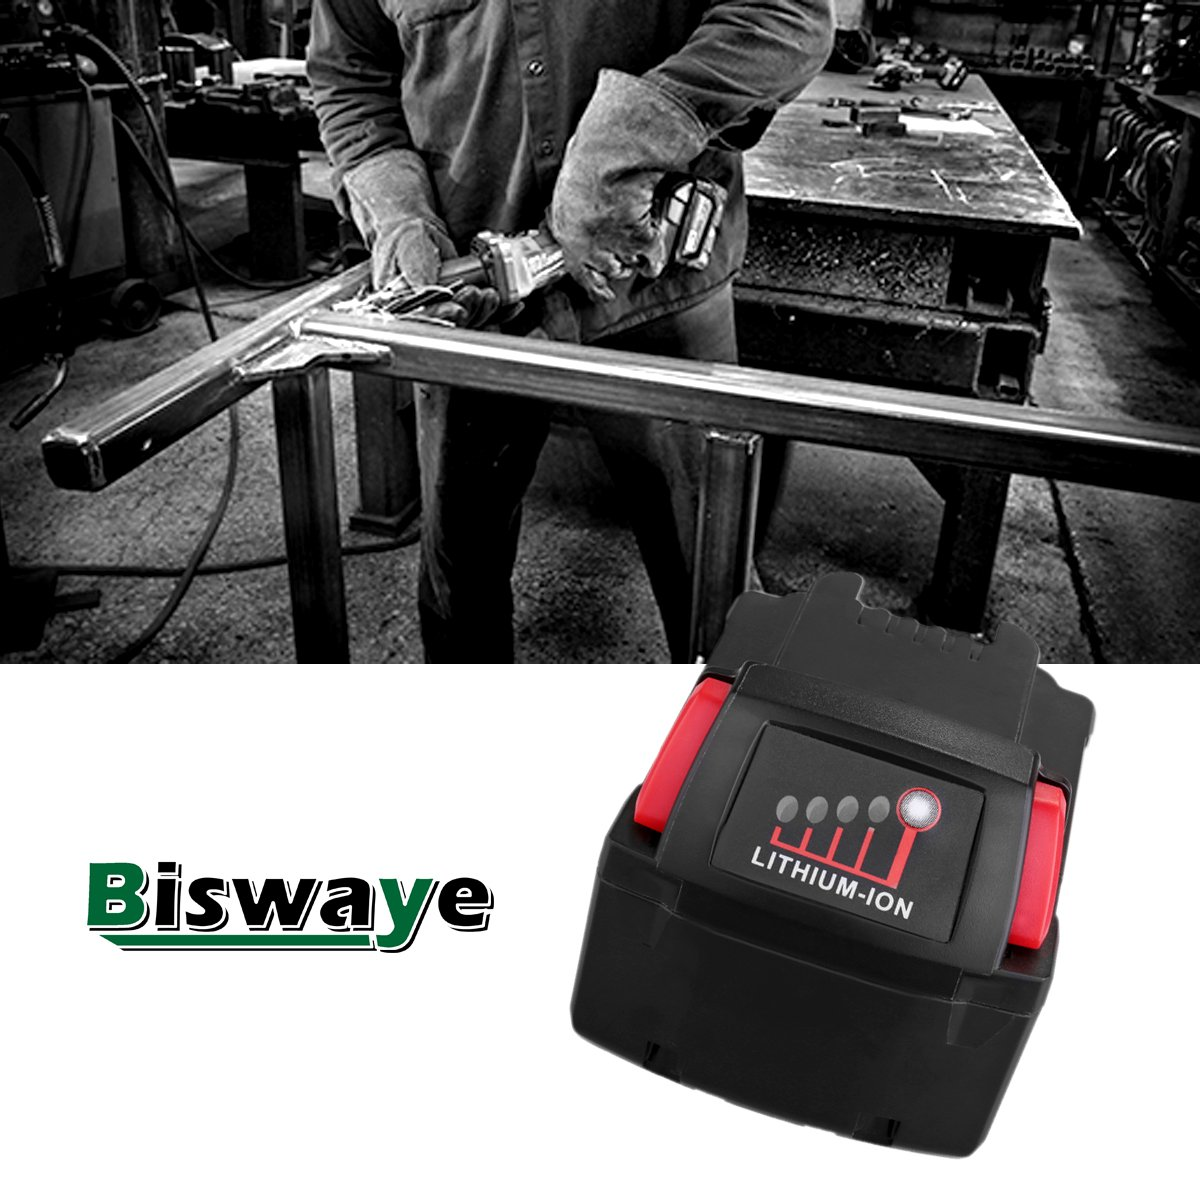 Biswaye 2 Pack 18V 5.0Ah Replacement Battery for Milwaukee 18V High Capacity Red Lithium Cordless Power Tools Battery M18 XC M18B 48-11-1820 48-11-1850 48-11-1828 by Biswaye (Image #5)